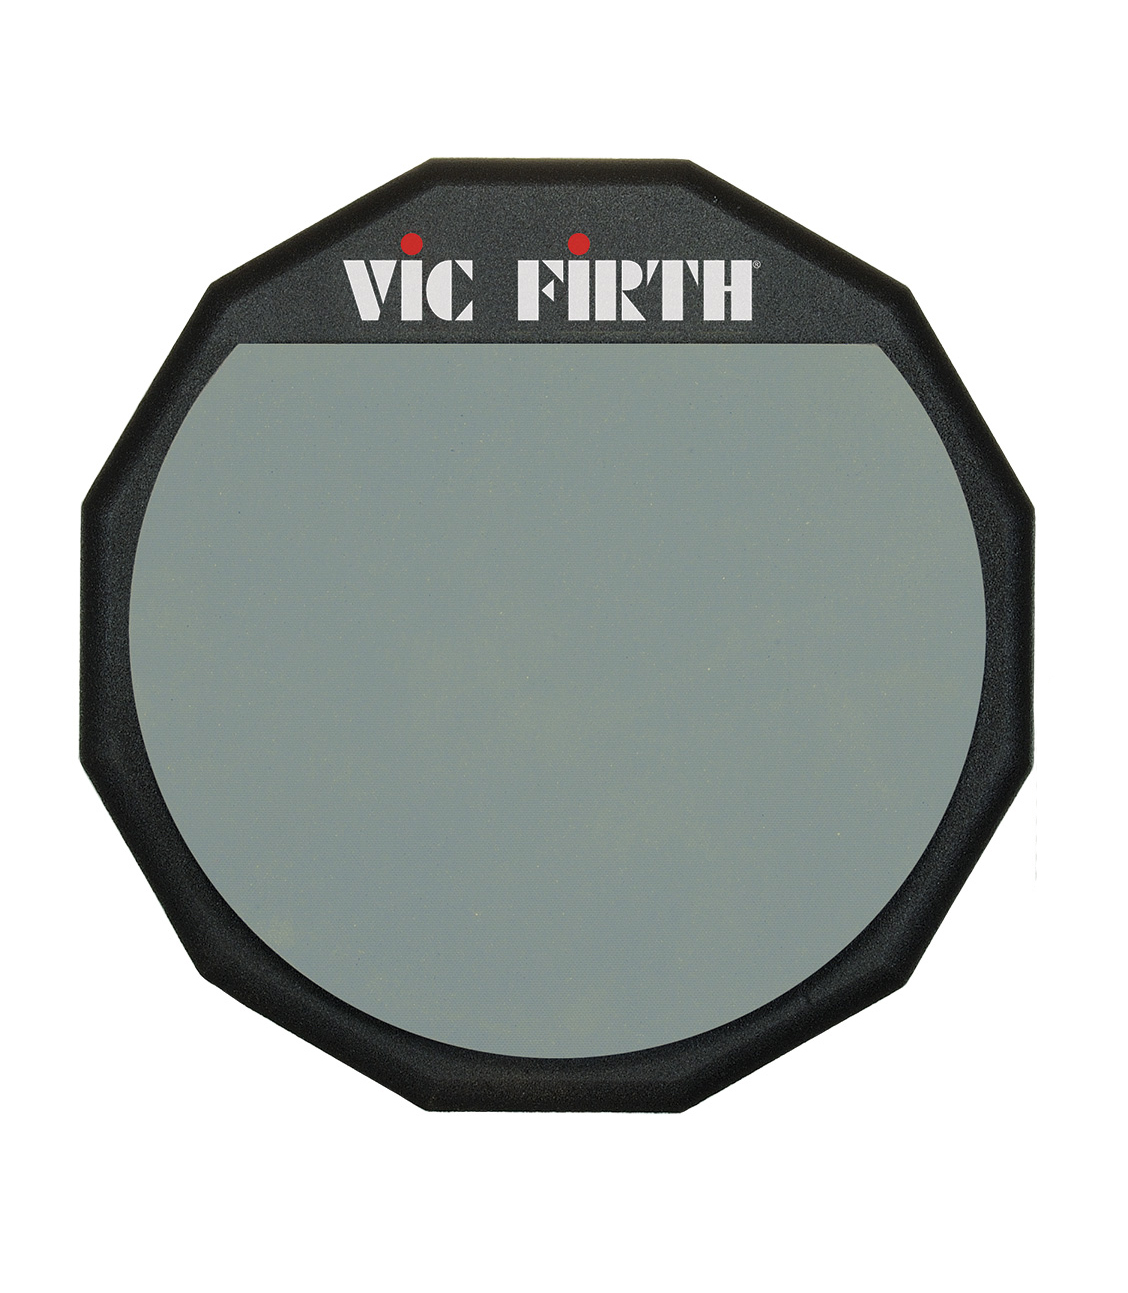 Vicfirth - 6 Inch Single Sided Practice Pad